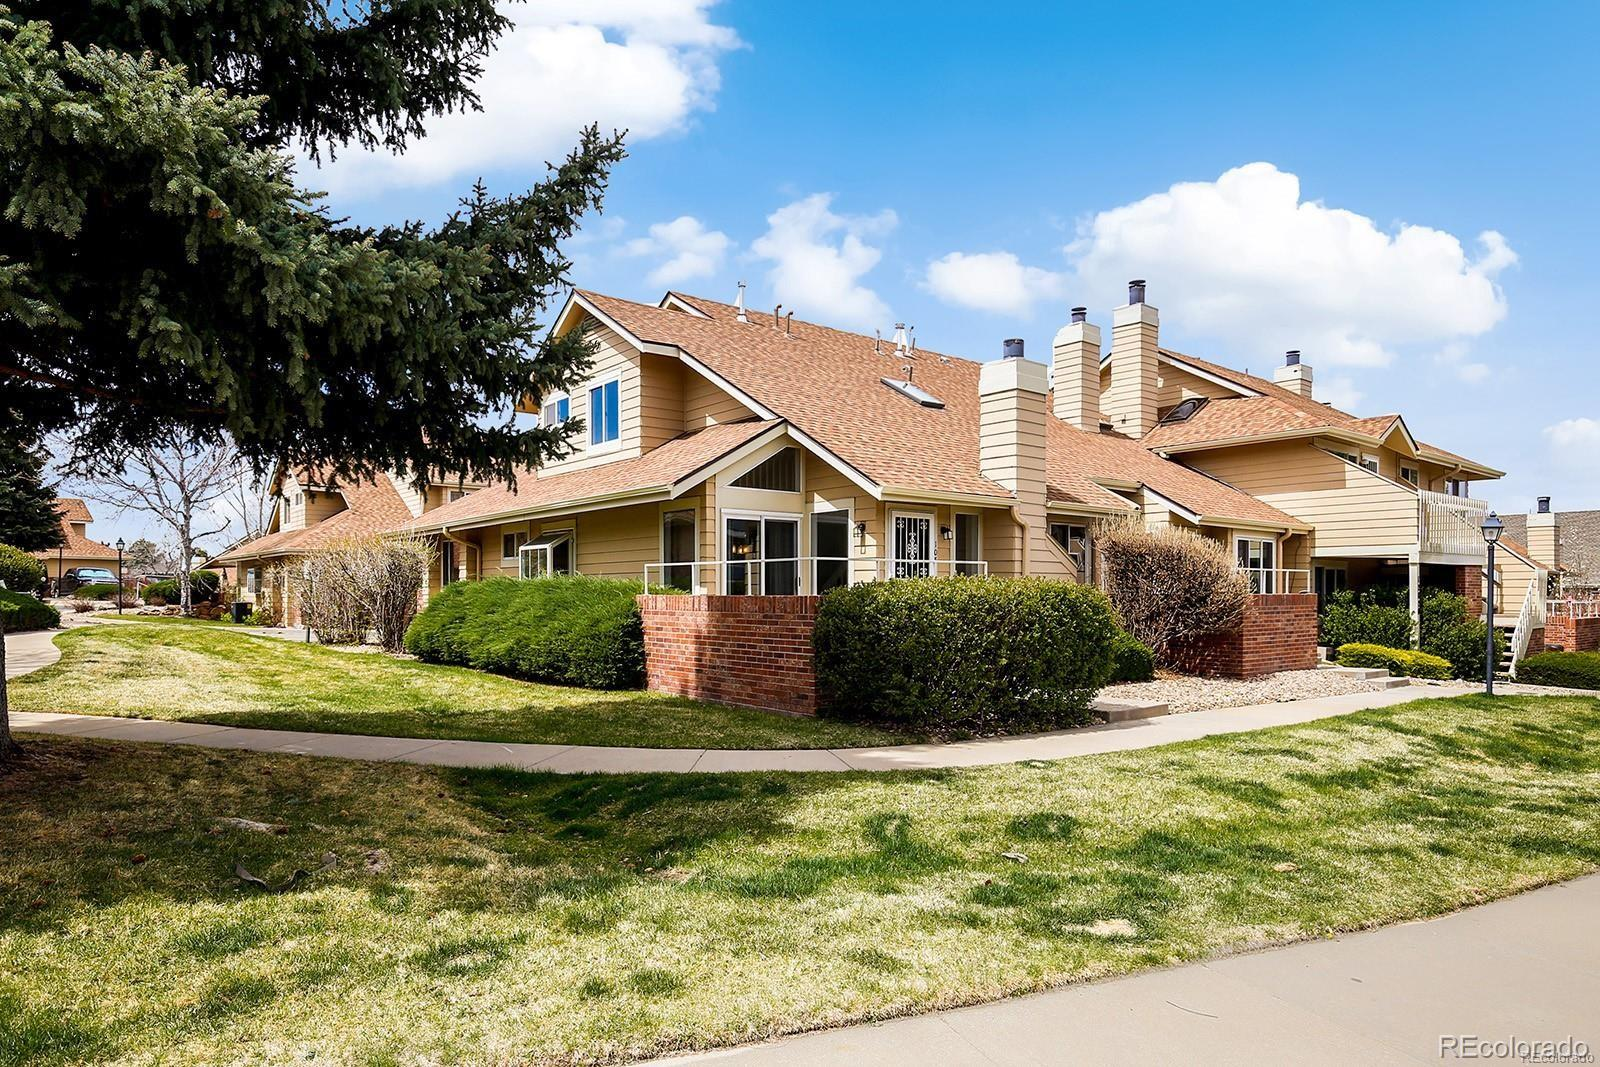 THE most OUTSTANDING REMODEL in the area.  YOU must see to believe.  Every possible SURFACE, has been redone.  ALL switches, lights, baths, vanities, floors, APPLIANCES, are ALL NEW.  WALK to shops, golf, restaurants .  TWO light rail stations CLOSE BY.  EASY ACCESS to I-225, Tech Center, JUST 15 minutes to CHERRY CREEK shopping and restaurants.15-20 to DIA.  Bus service one block.